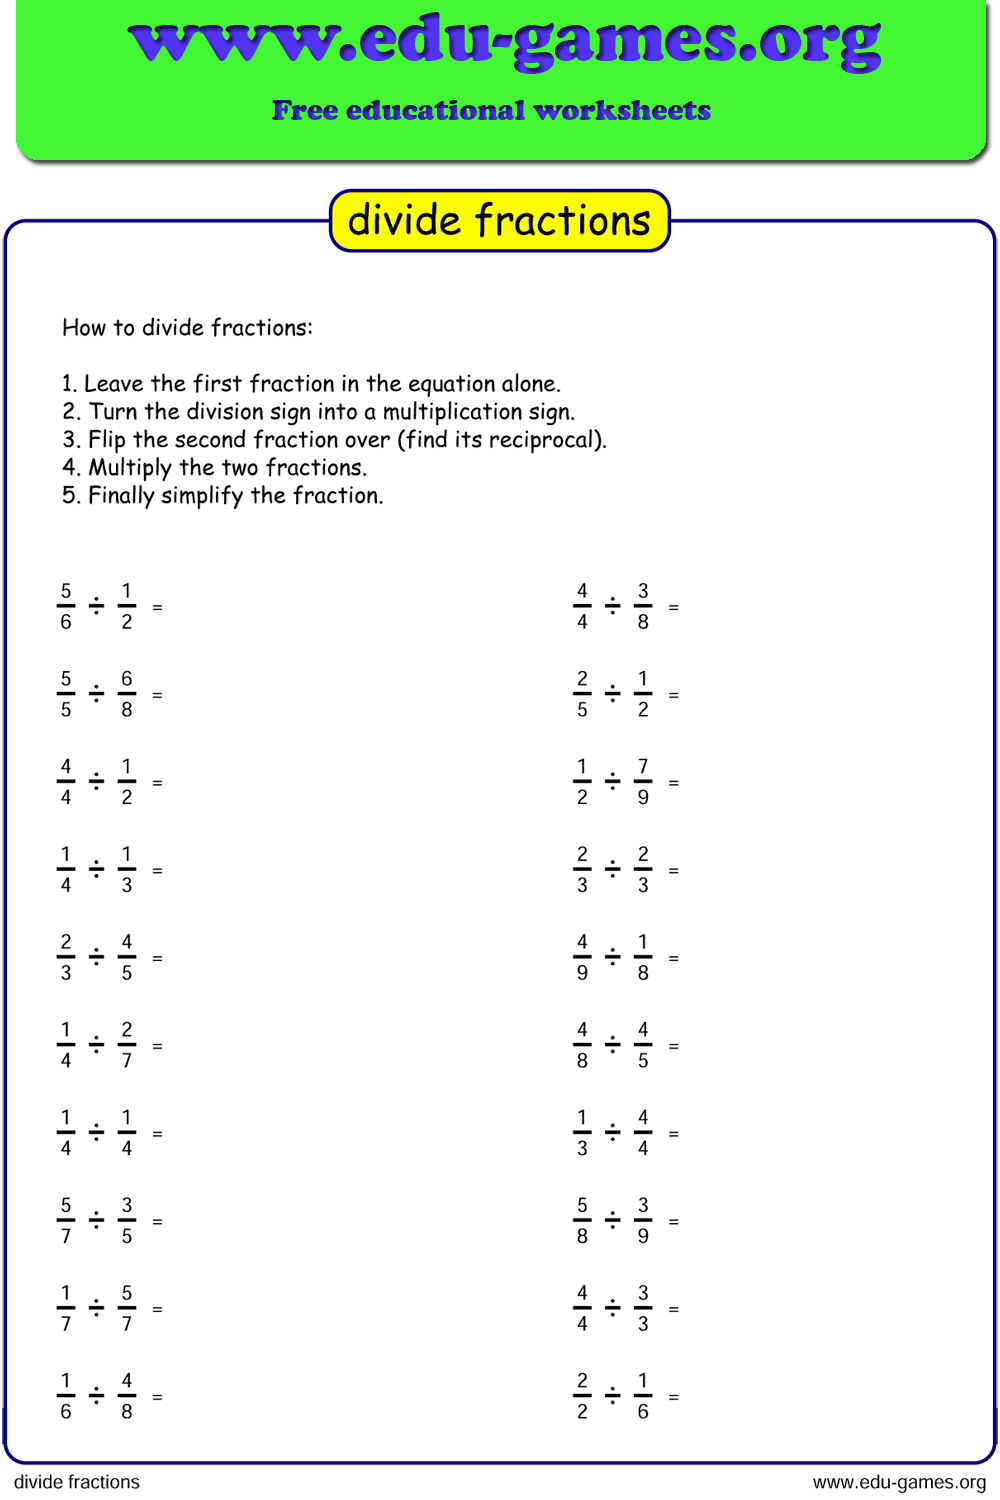 Free Division Fraction Worksheets Unlimited Worksheets Because Every Worksheets Is Generated Fractions Worksheets Math Expressions Math Worksheets